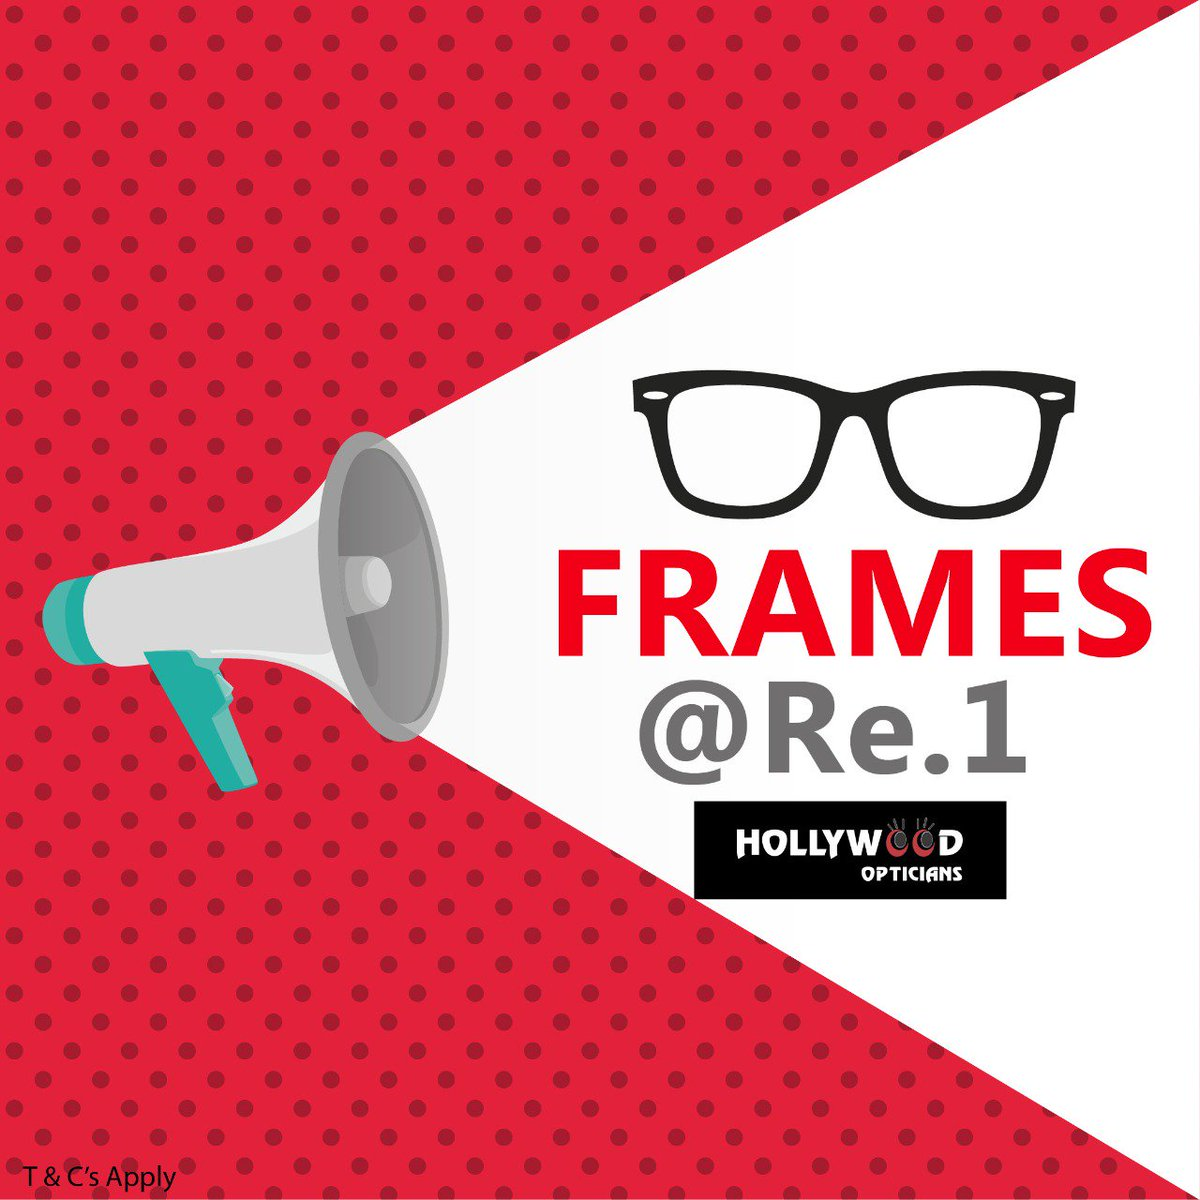 Rush to your nearest Hollywood Optician store and get your favorite frames only at Re.1/-  #offers #opticians #Sunglasses #frame #spectacles #shopping  #mall #retail #Lens  #TuesdayThoughts<br>http://pic.twitter.com/MPRGqcRquT